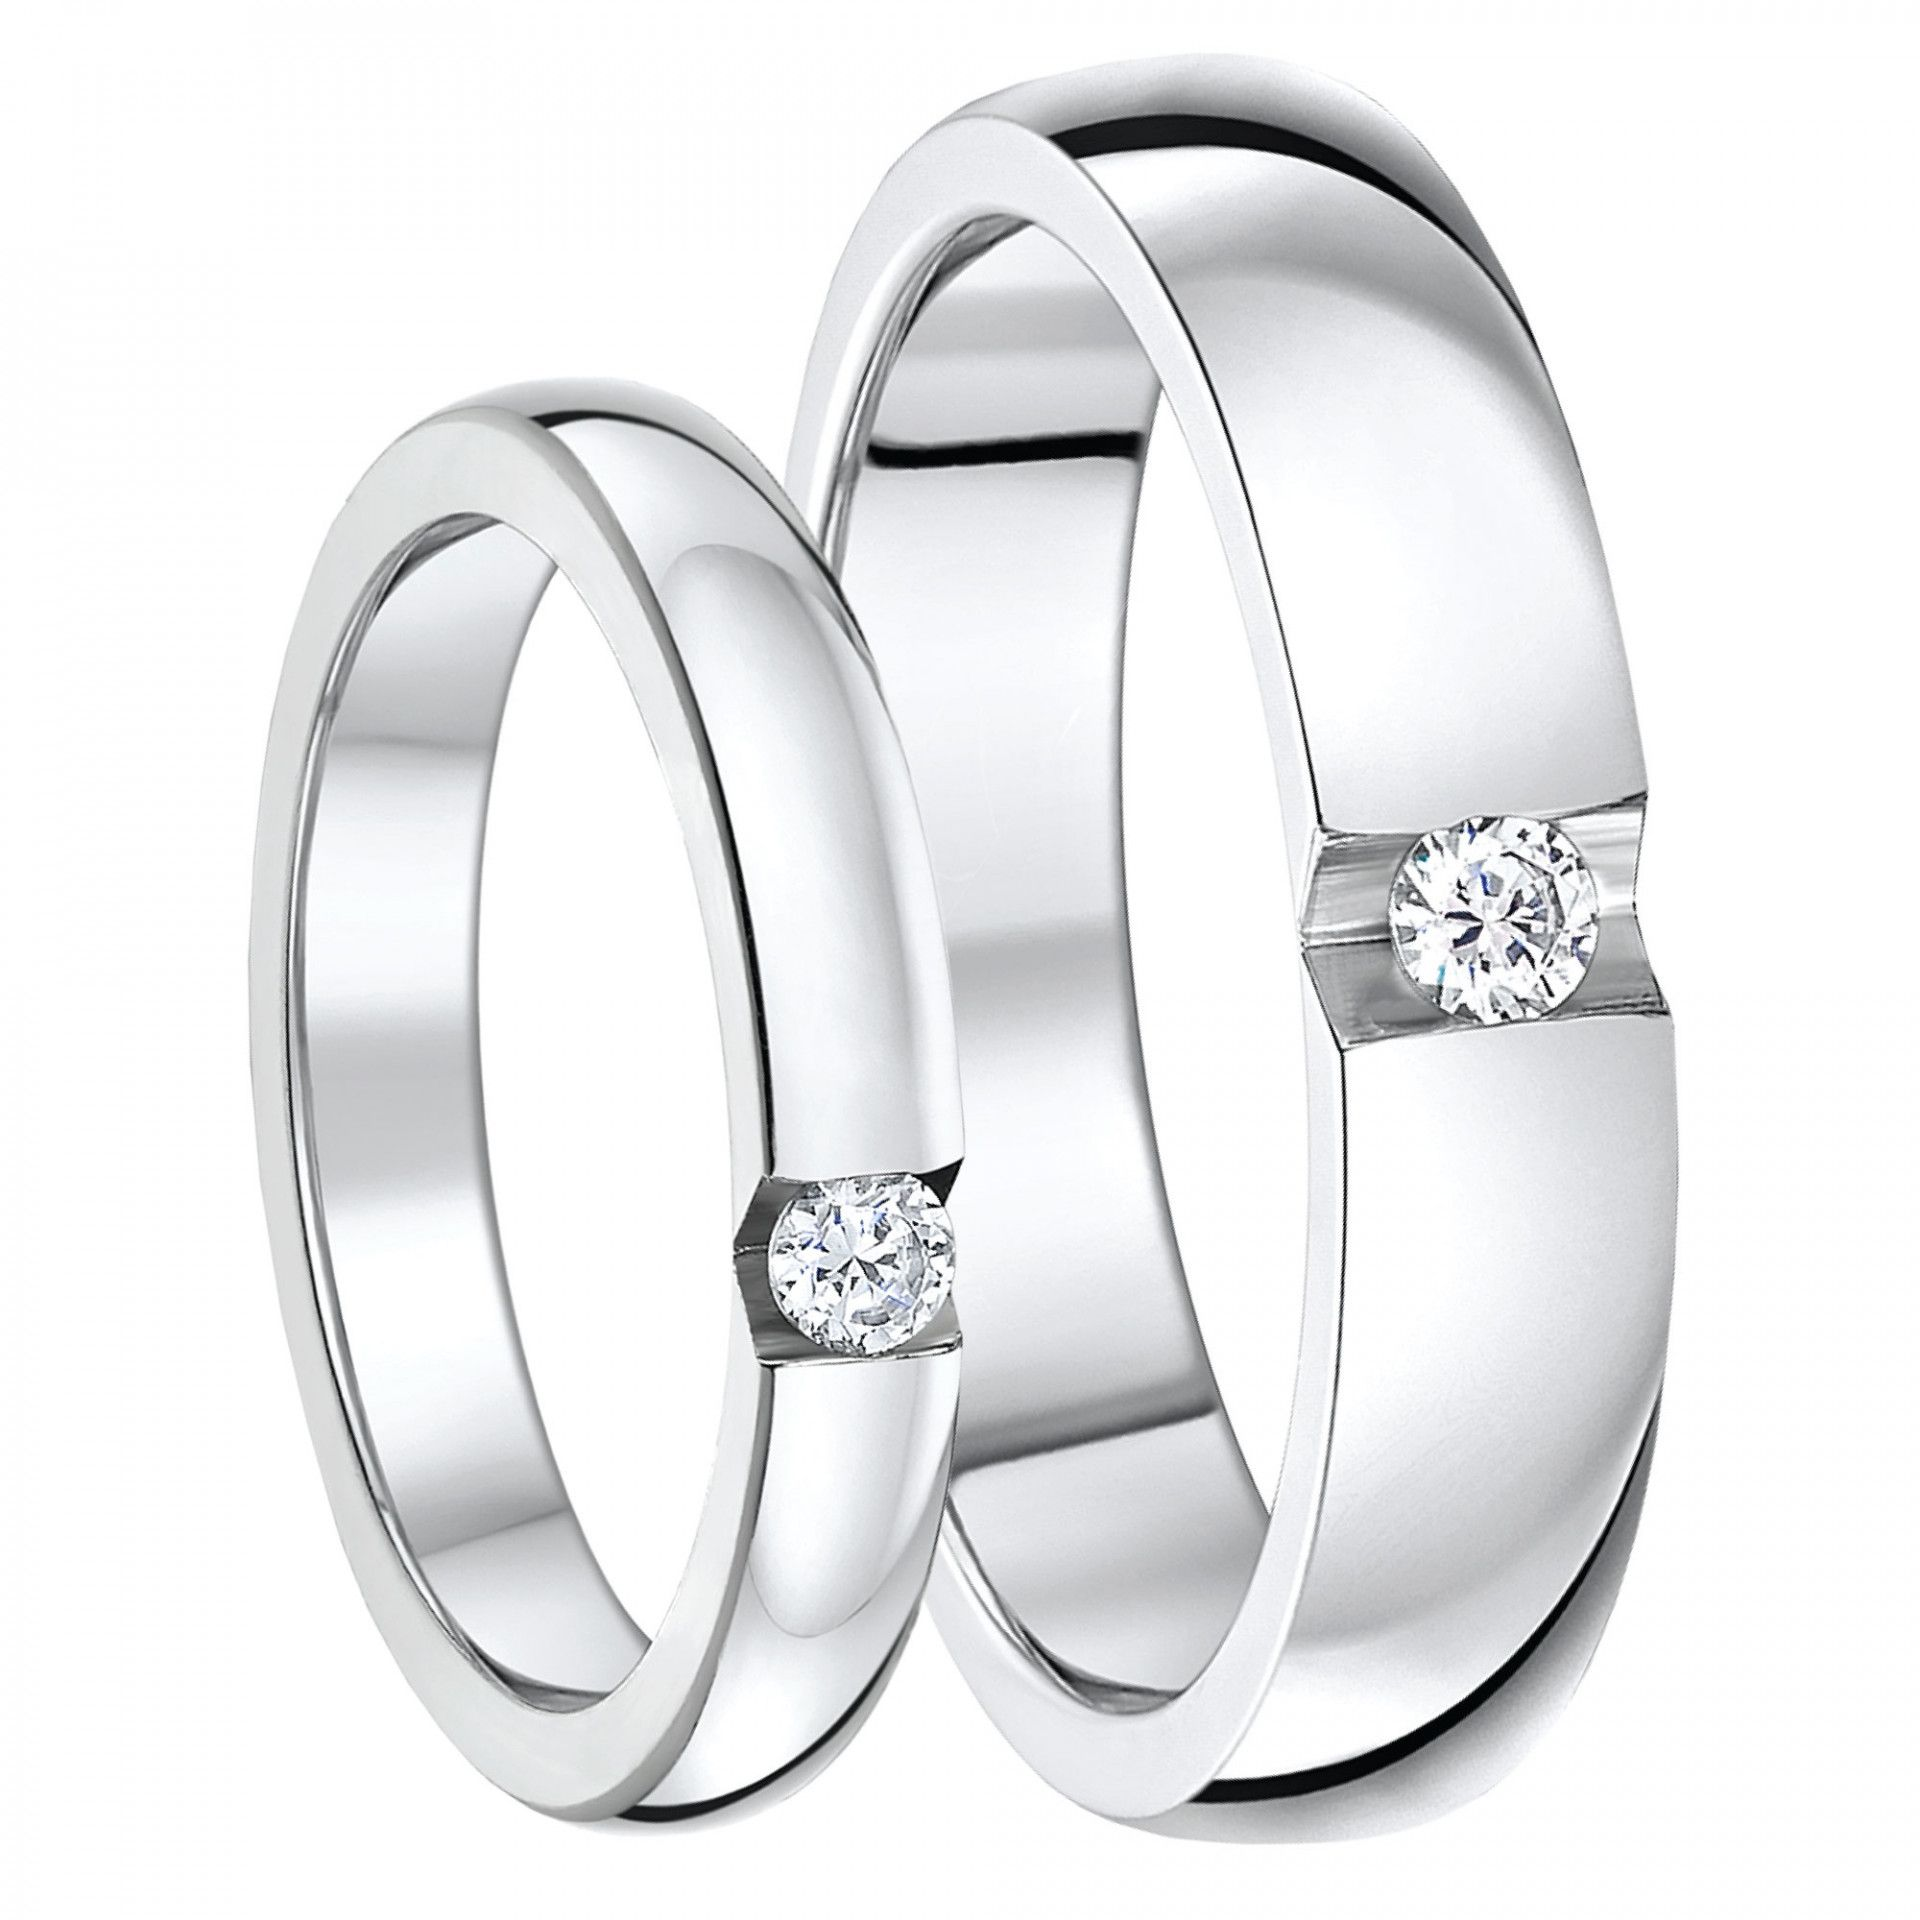 This Is How Cheap Wedding Rings Sets For His And Her Will Look Like In 9 Years Time